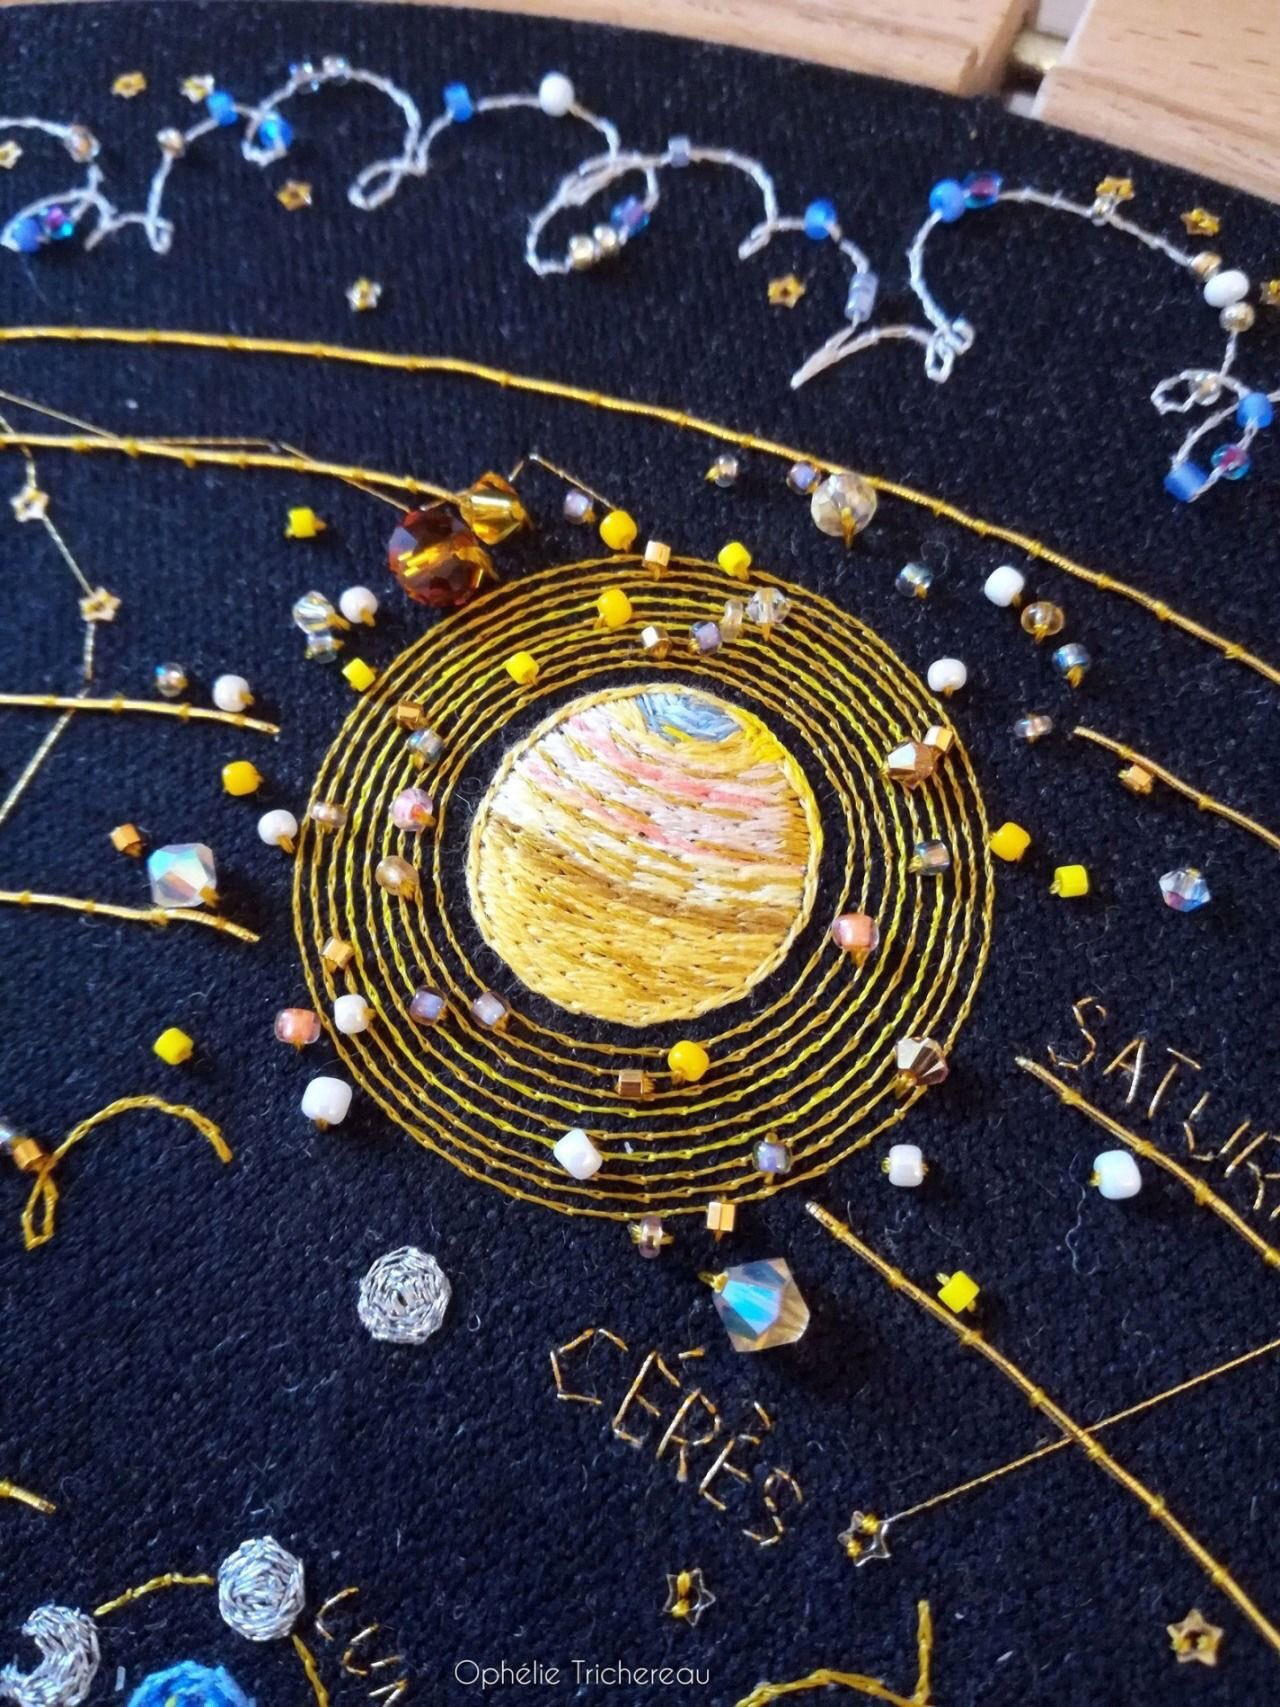 Woven Constellations and Embroidered Space by Ophelie Trichereau